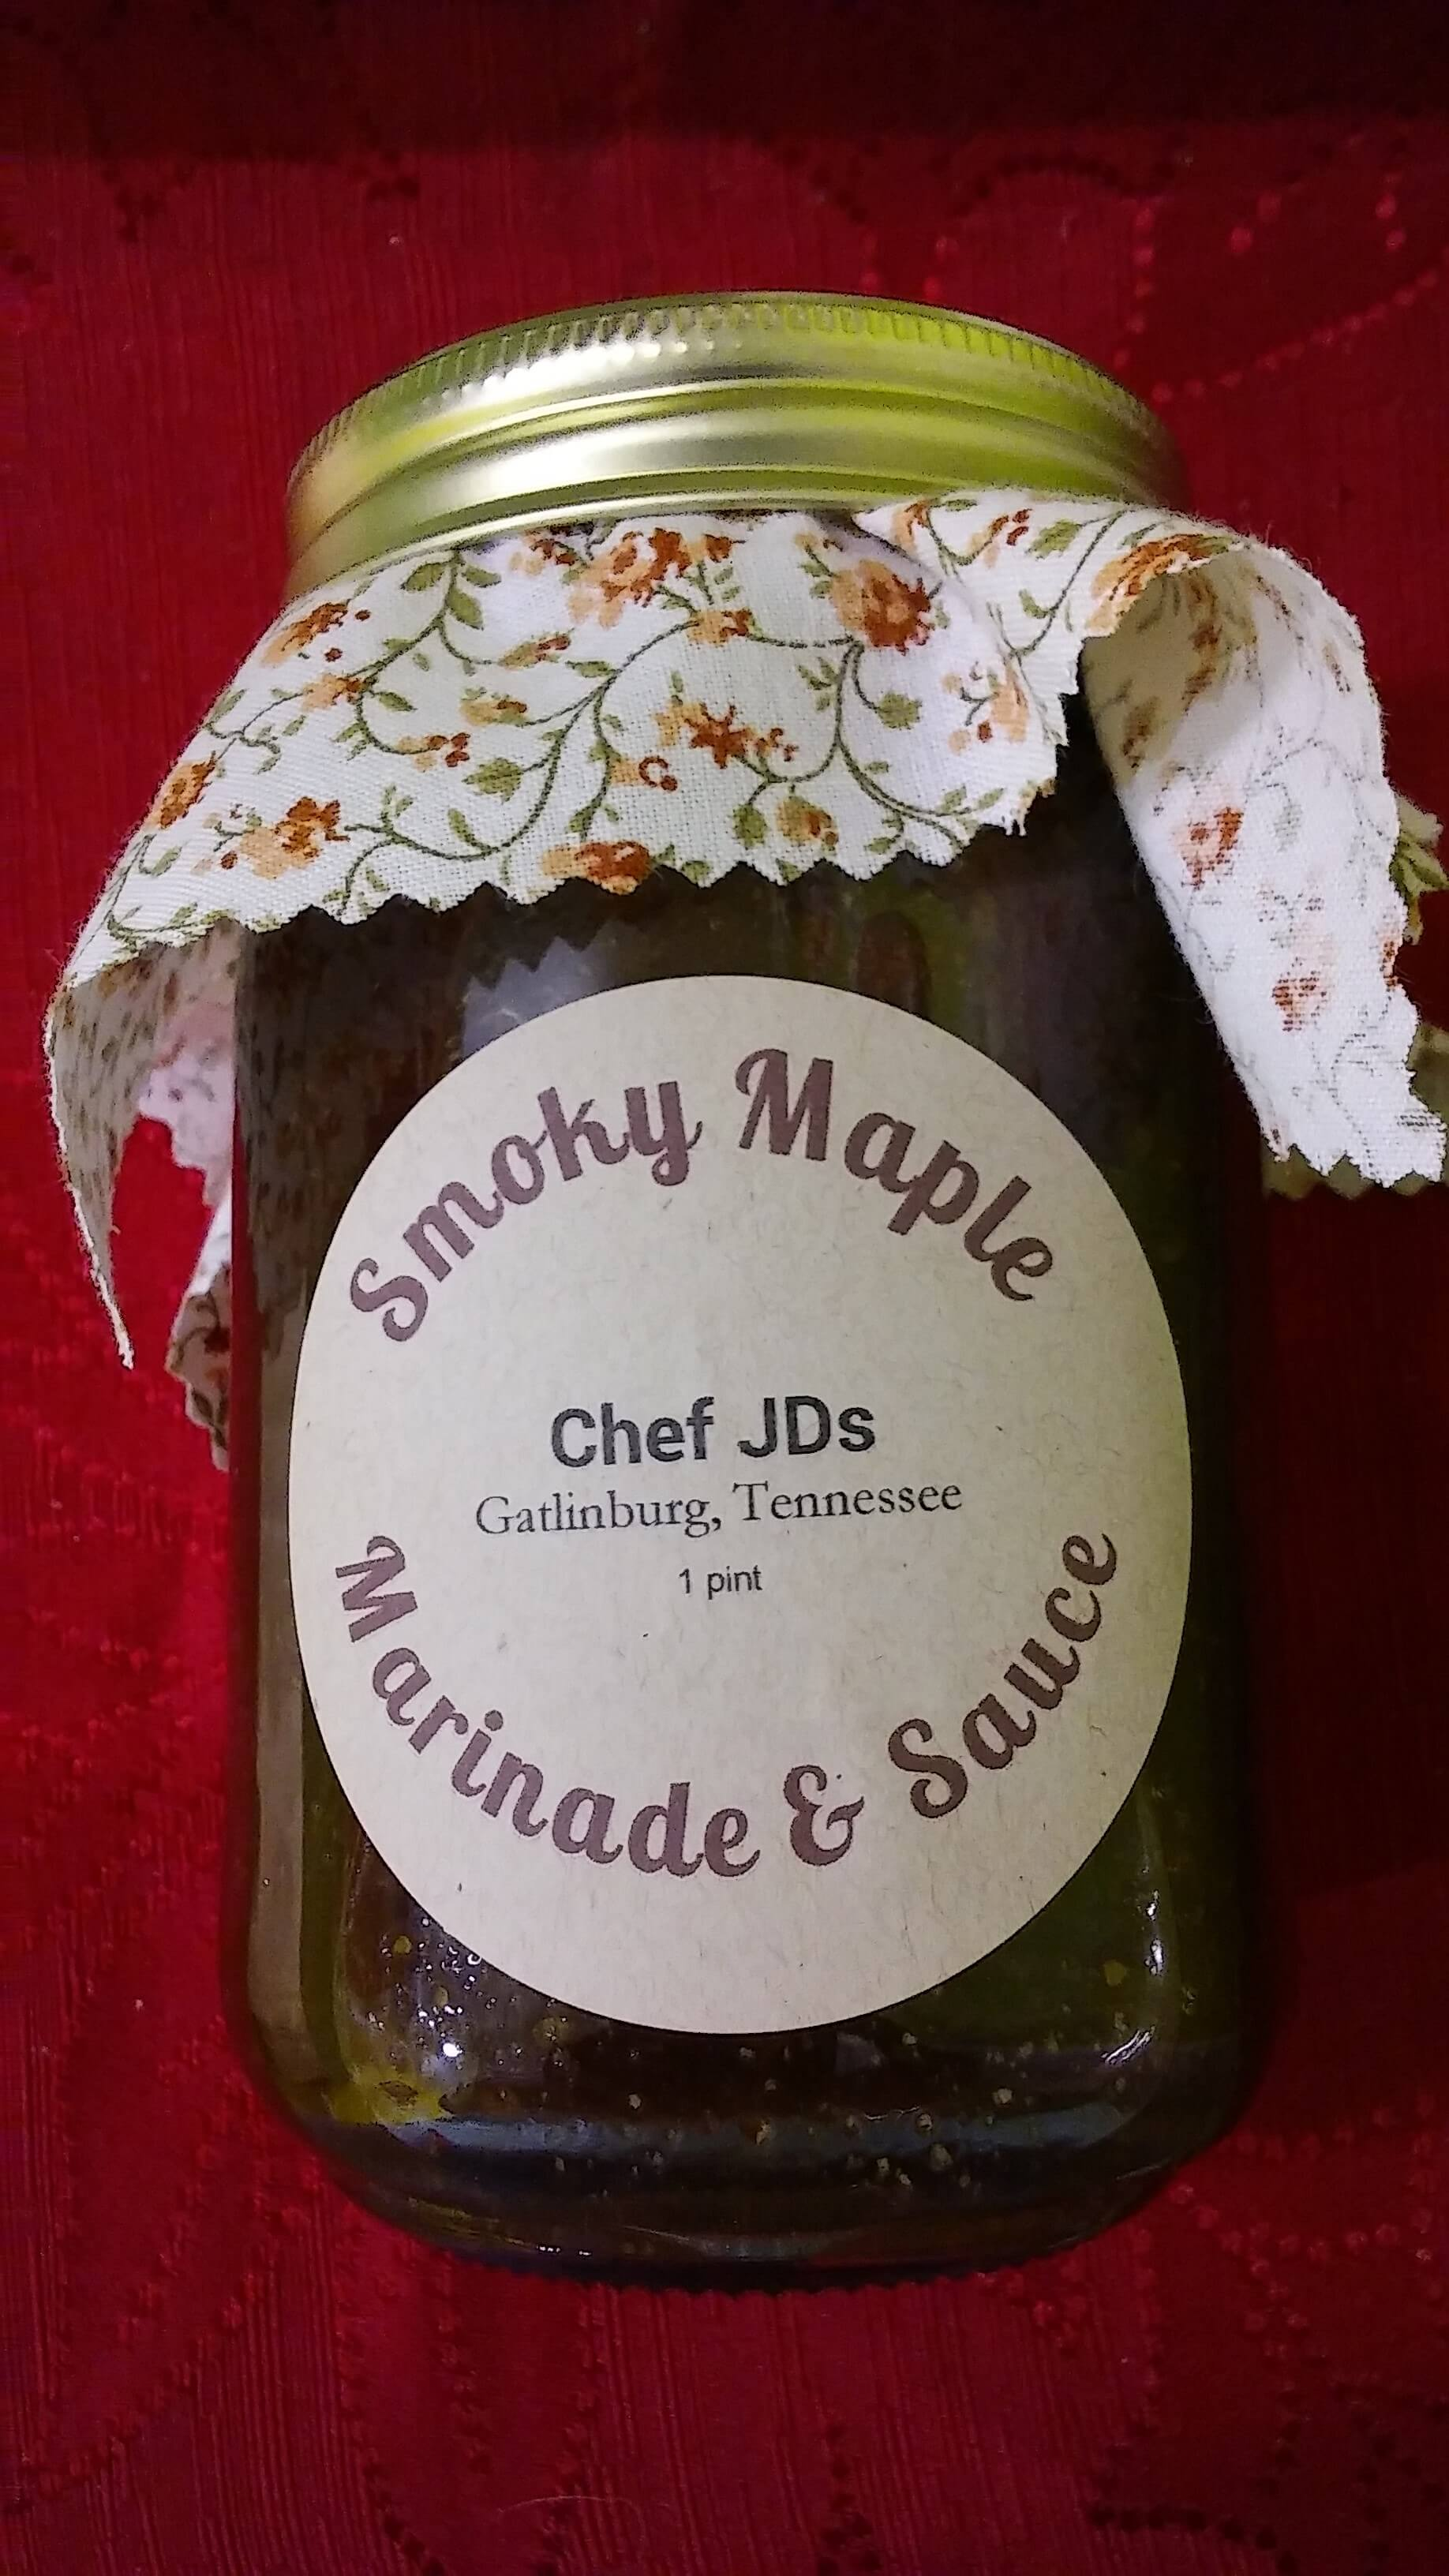 Smoky Maple Marinade & Sauce